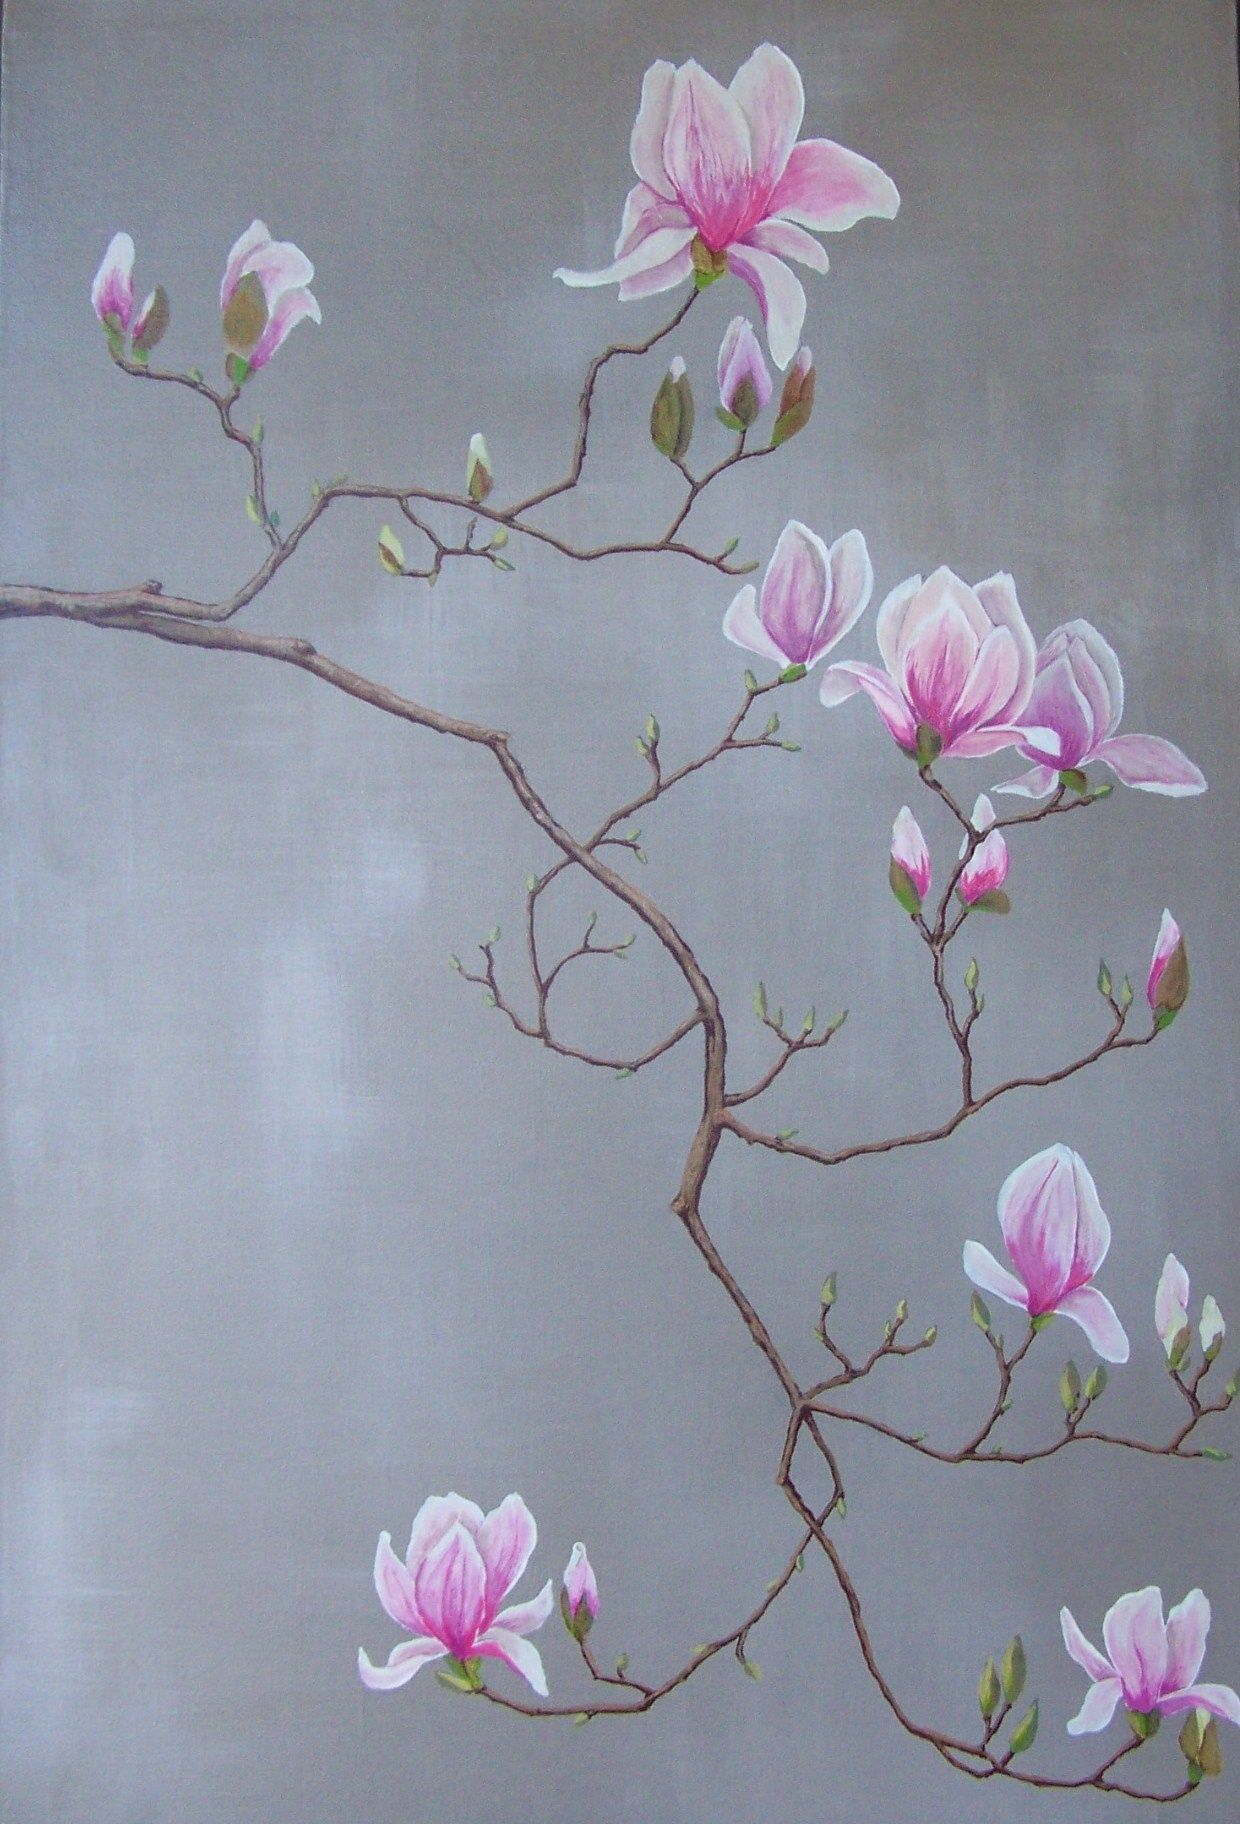 Magnolia Acrylic On Canvas By Rob Cosby Acrylic Painting Flowers Flower Art Flower Painting